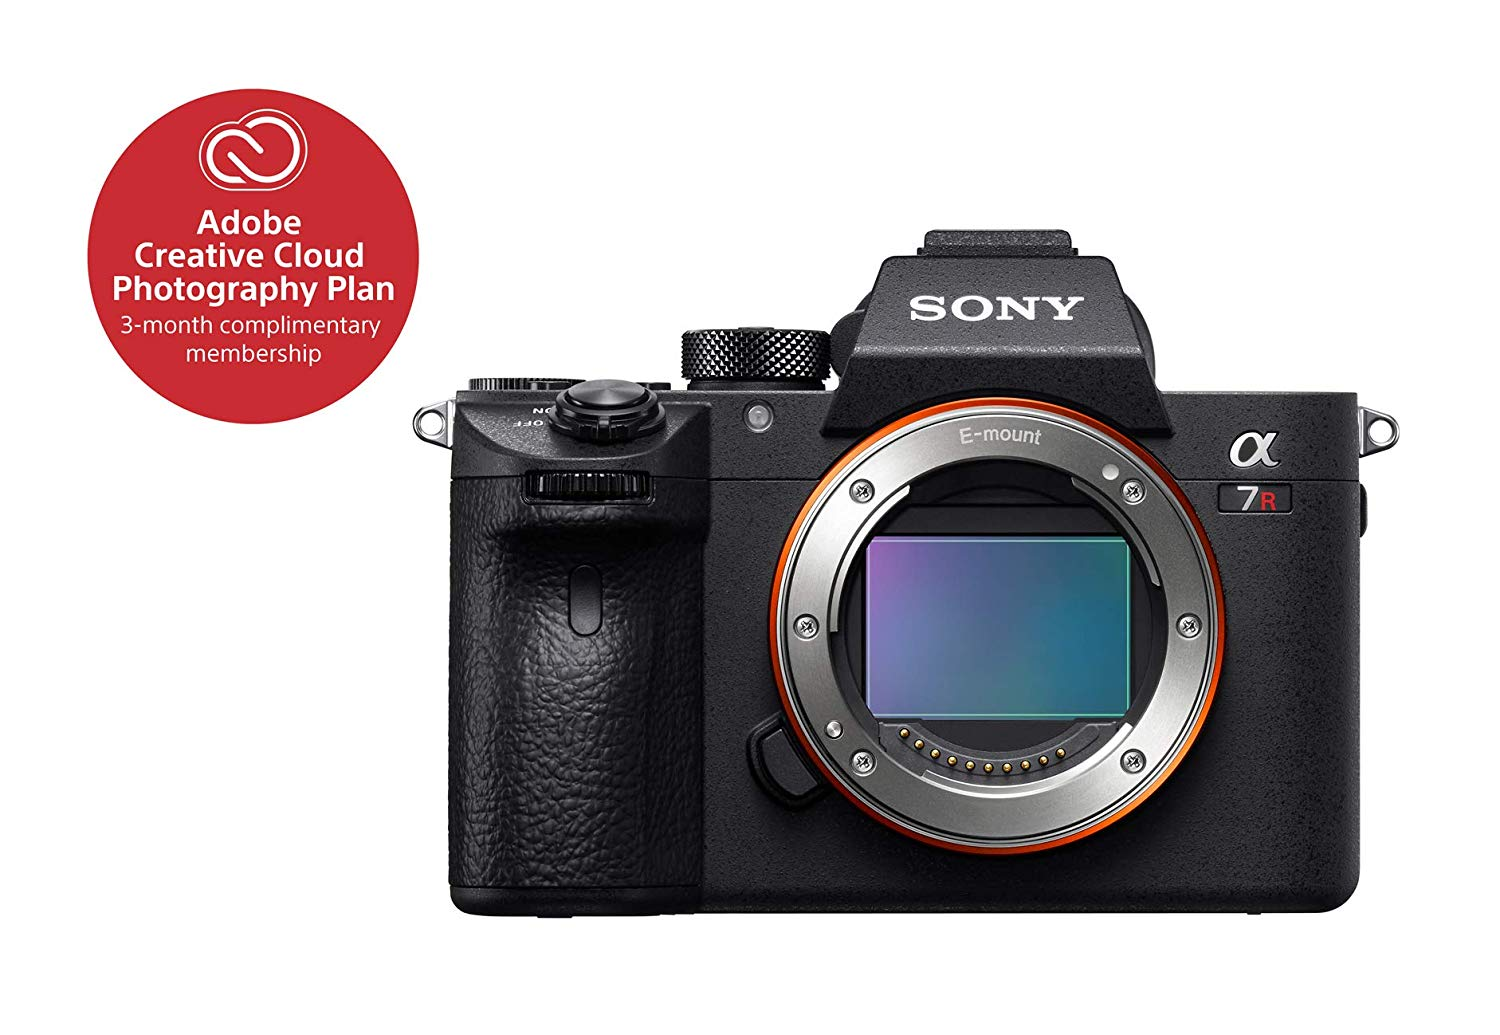 Sony a7R III Mirrorless Camera 42 4MP Full Frame High Resolution Mirrorless Interchangeable Lens Digital Camera with Front End LSI Image Processor  4K HDR Video and 3